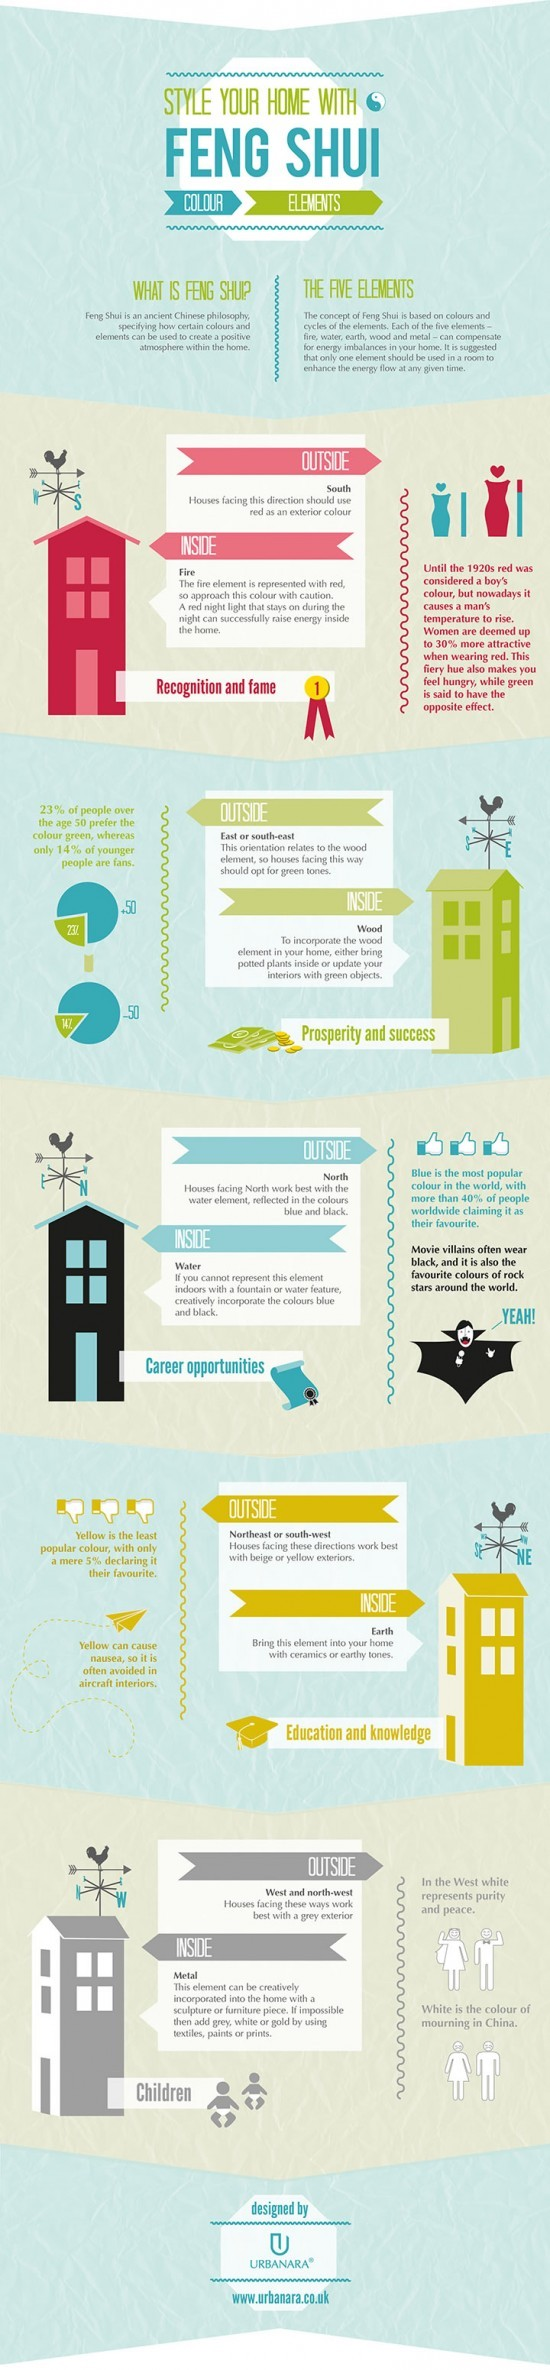 Feng shui tips what it is and how it works infographic - Feng shui items that you can use to decorate your home ...